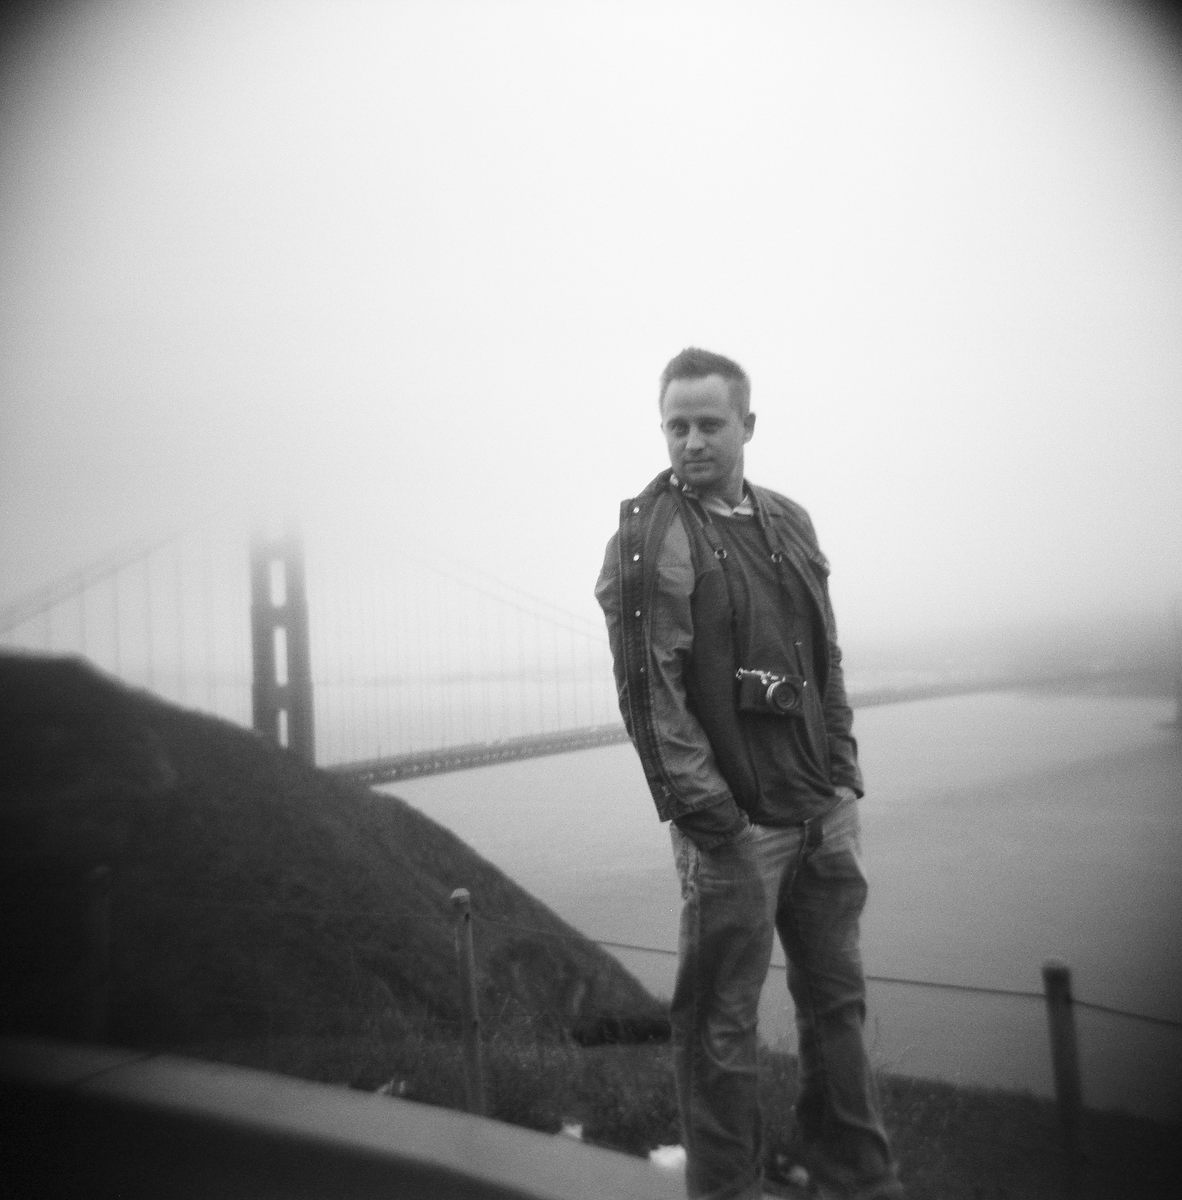 Matt Adcock, photo by Ben Chrisman, San francisco California golden gate bridge